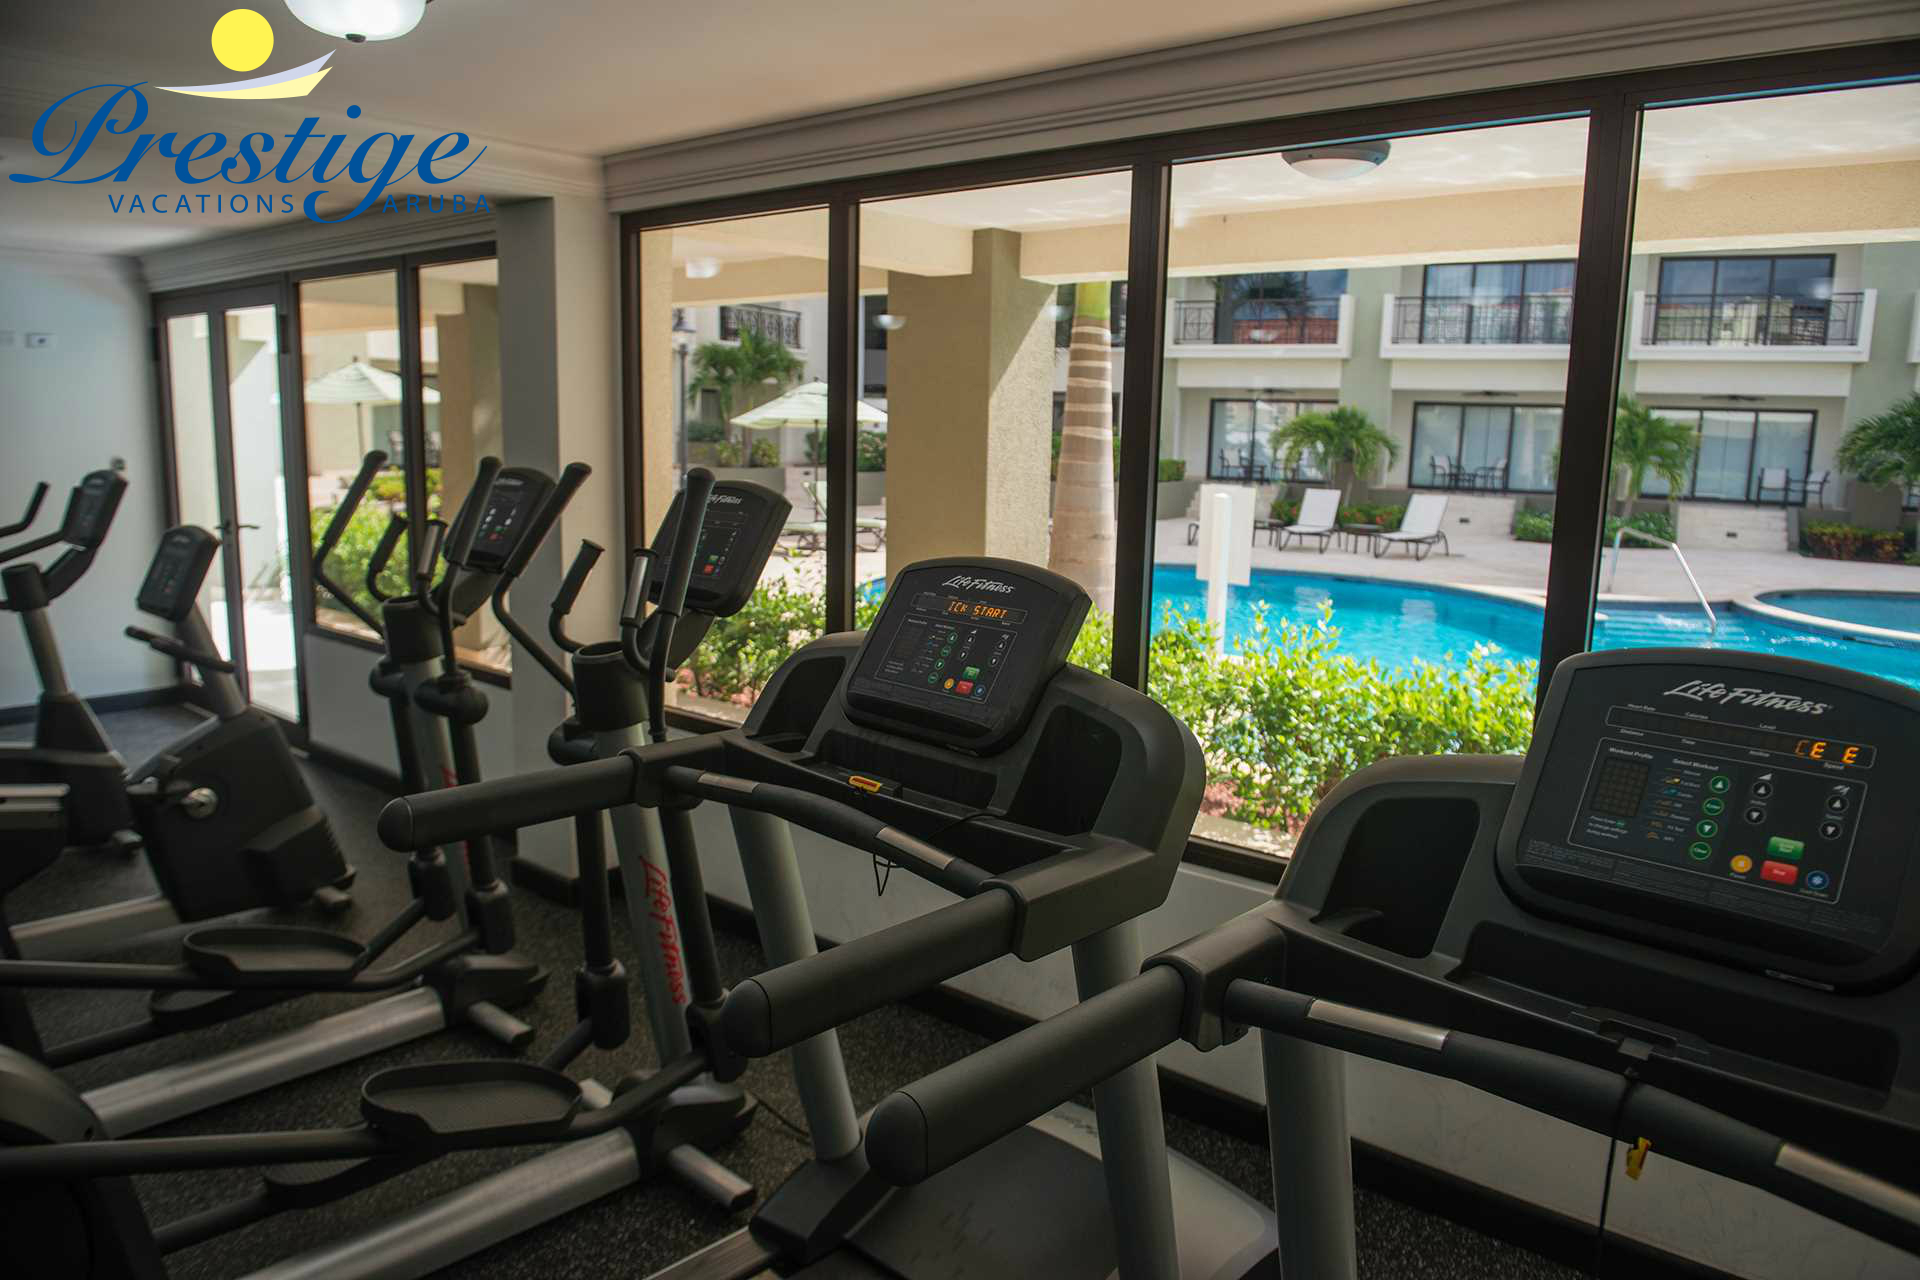 Fitness Center overlooking the pool area